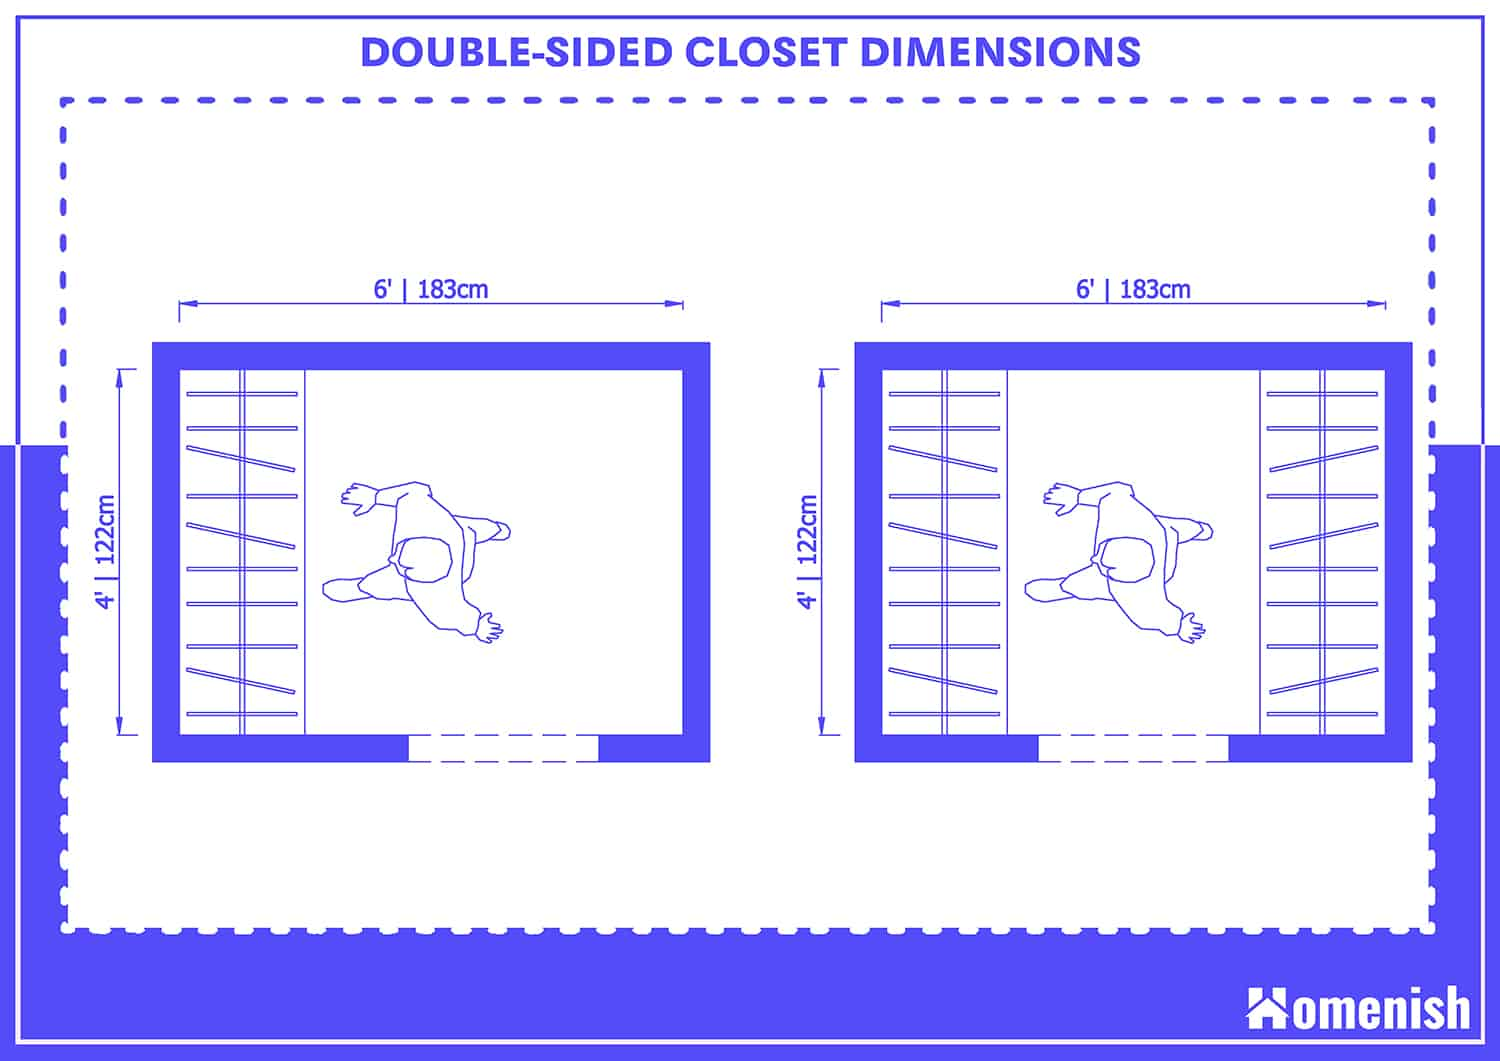 Double-Sided Closet Dimensions